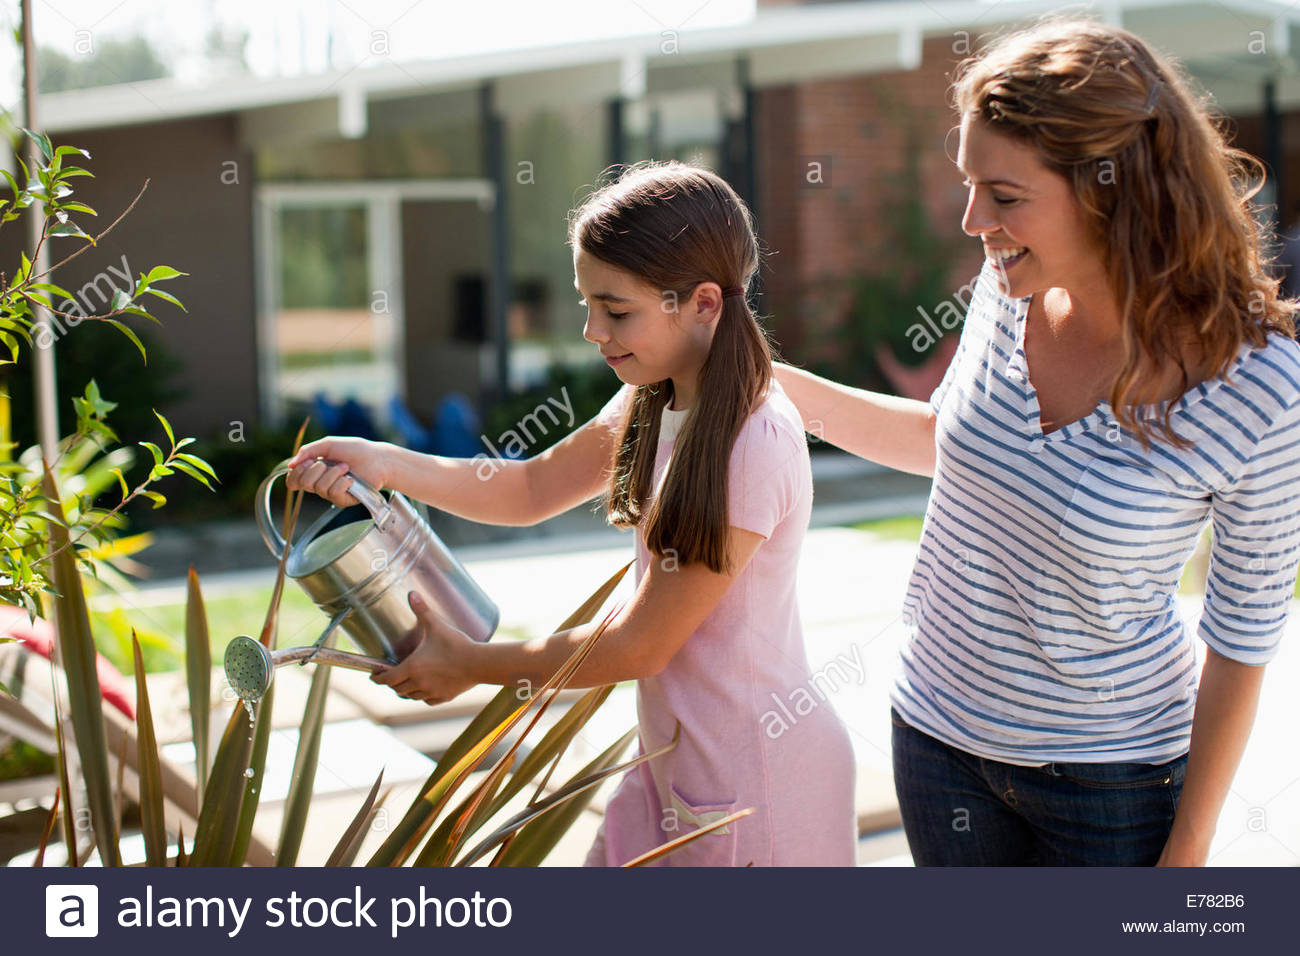 Mother and daughter watering plants outdoors - Stock Image